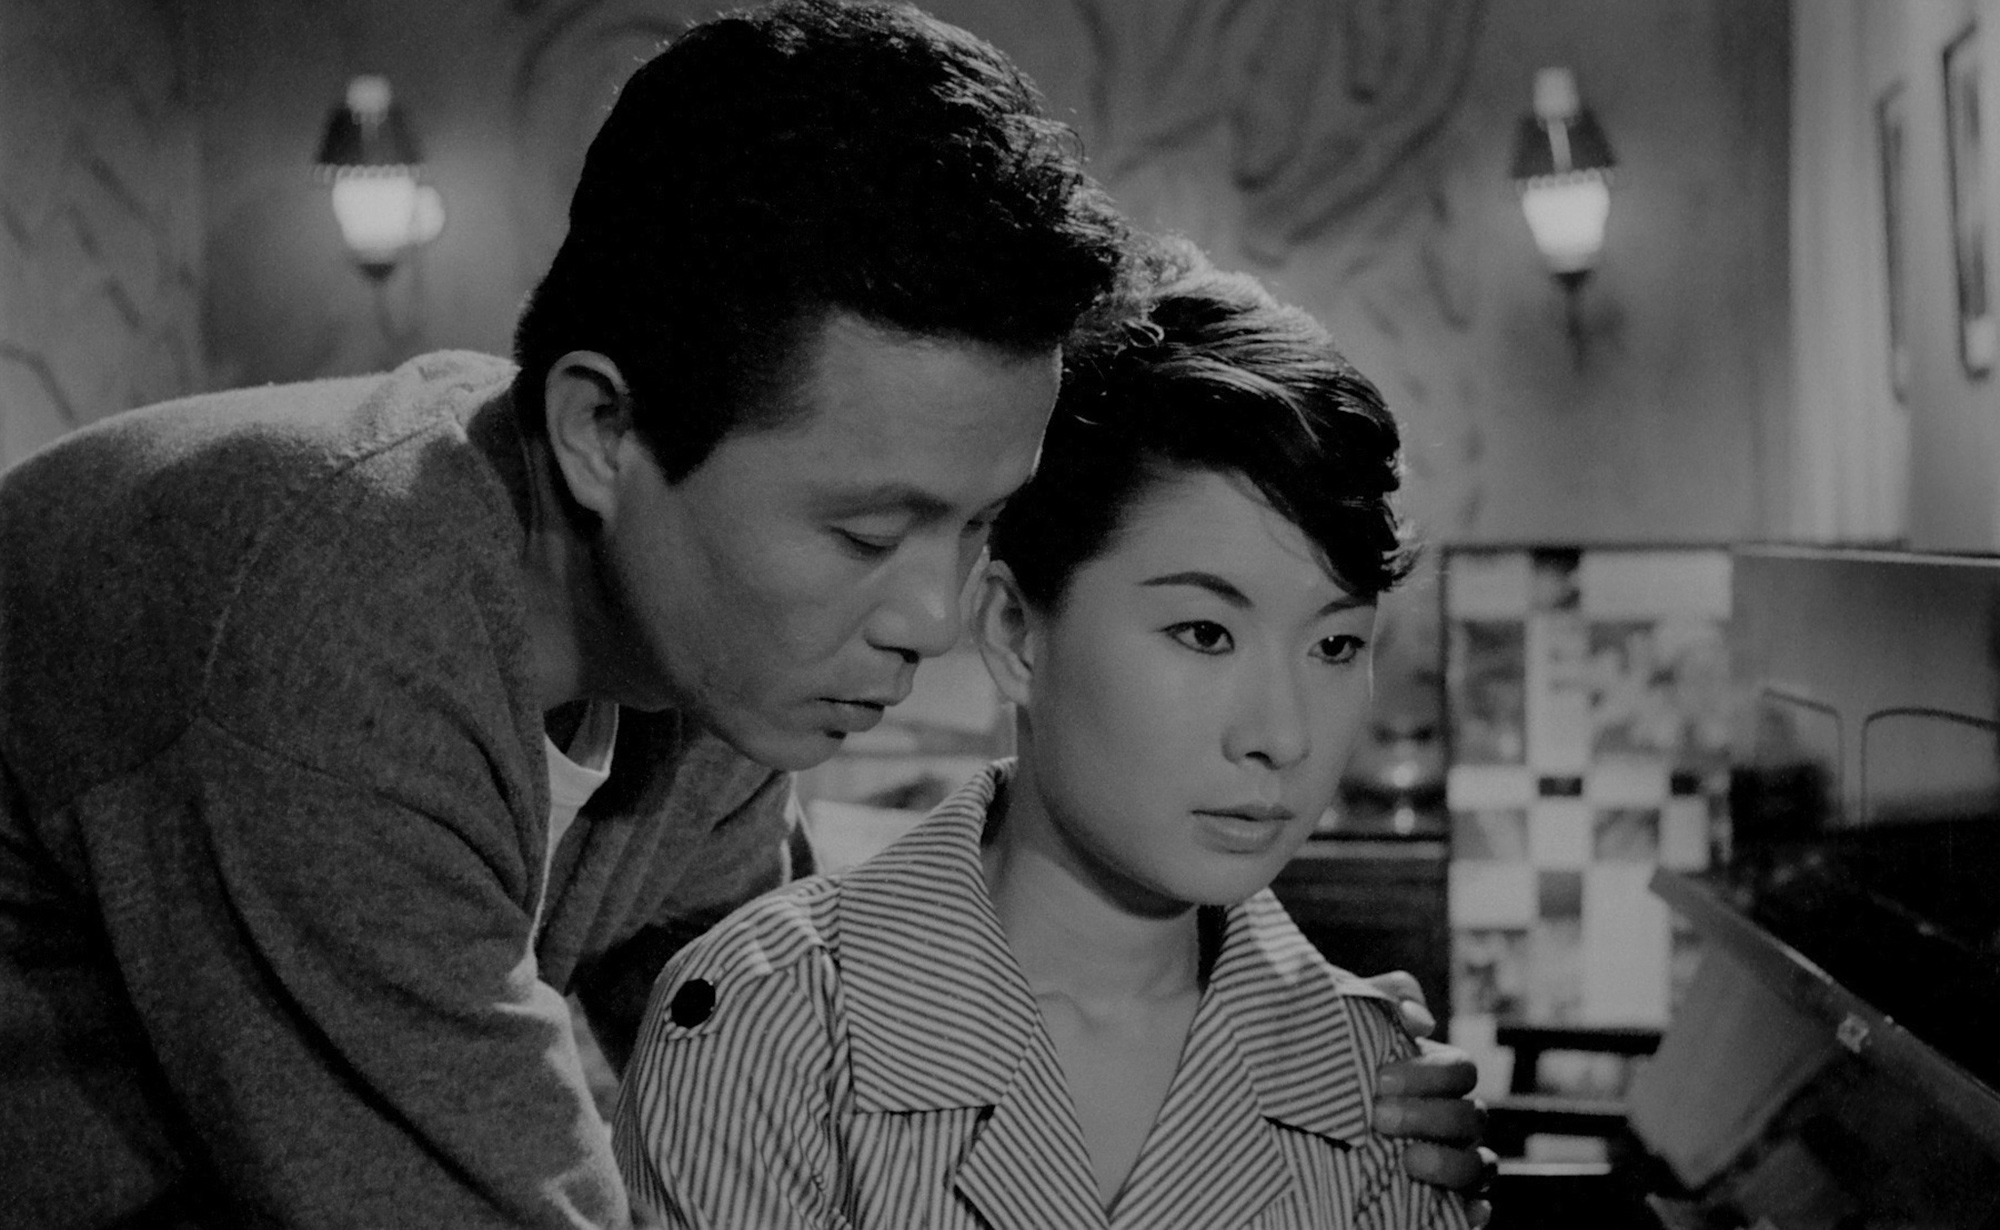 Erotic Films That Expose Korea's Dark Side